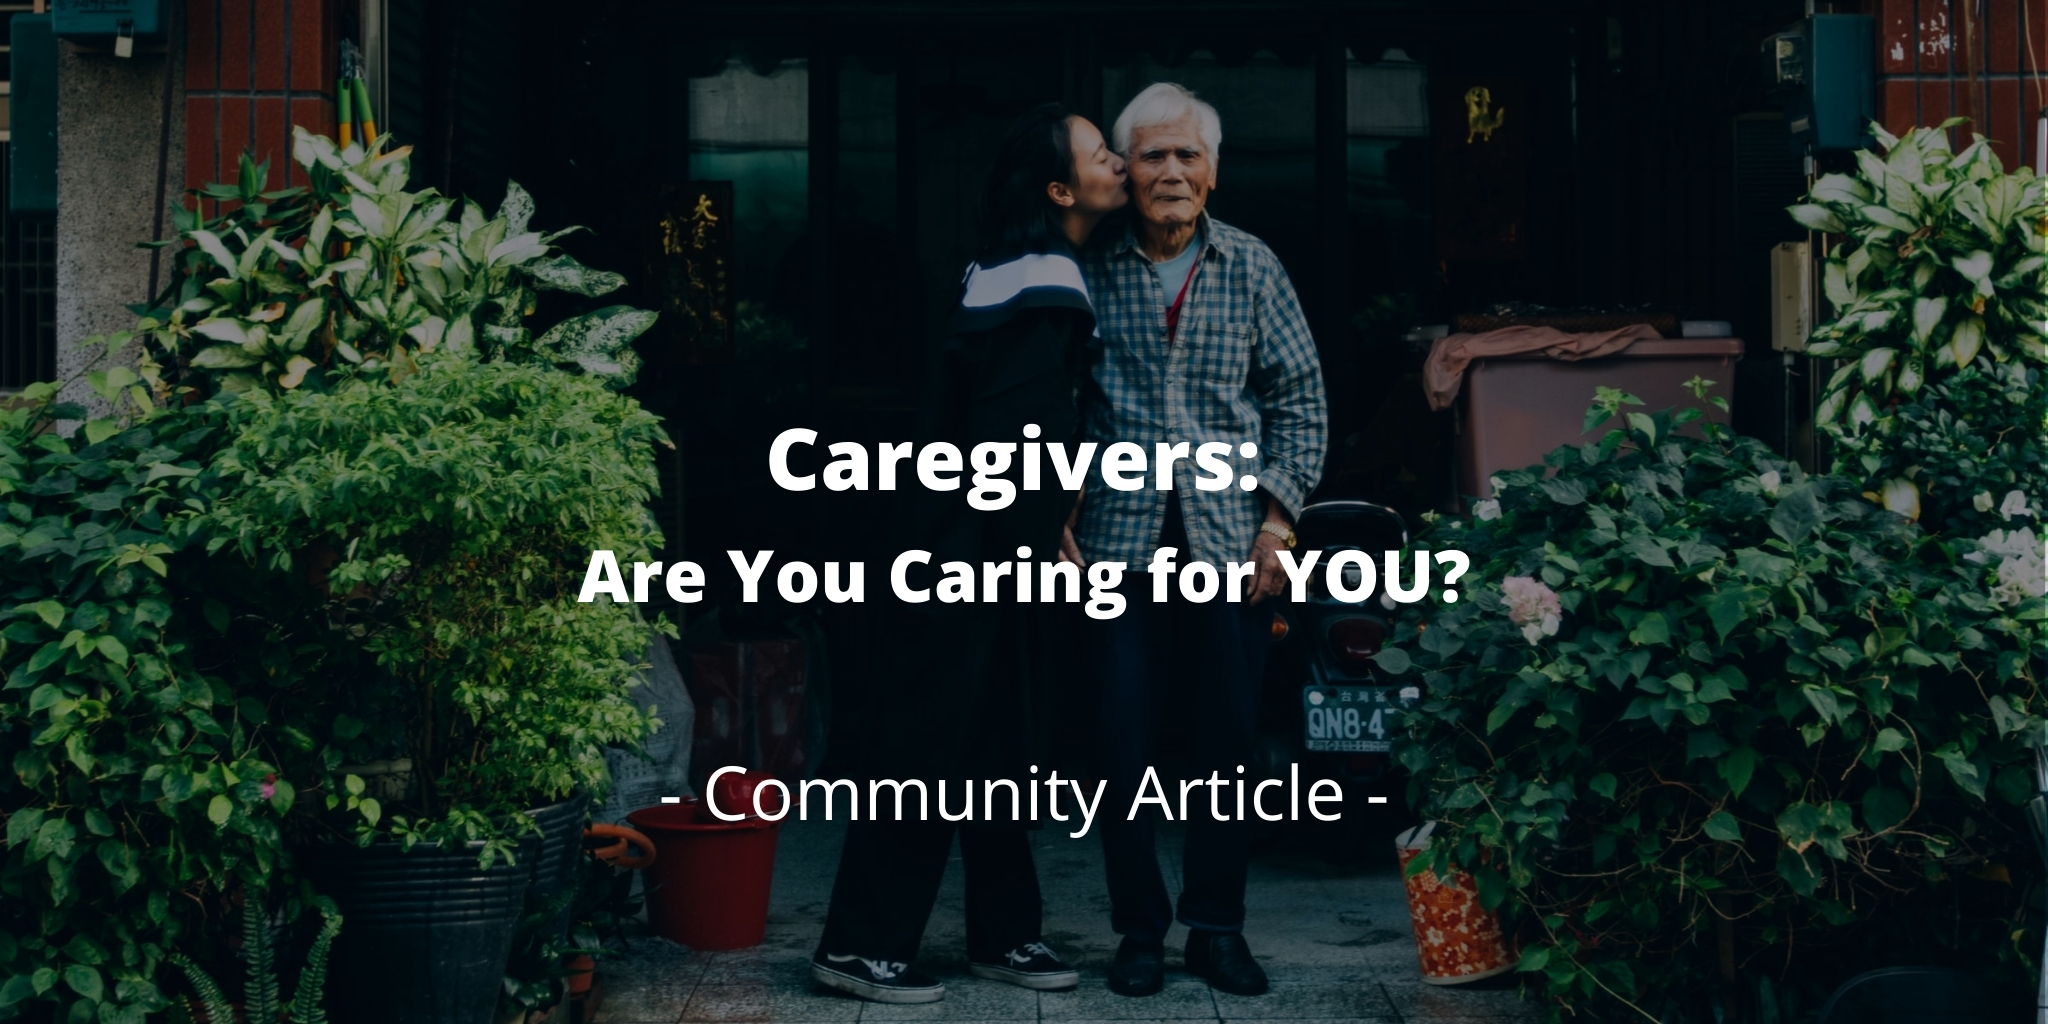 Caregivers: Are You Caring for YOU?